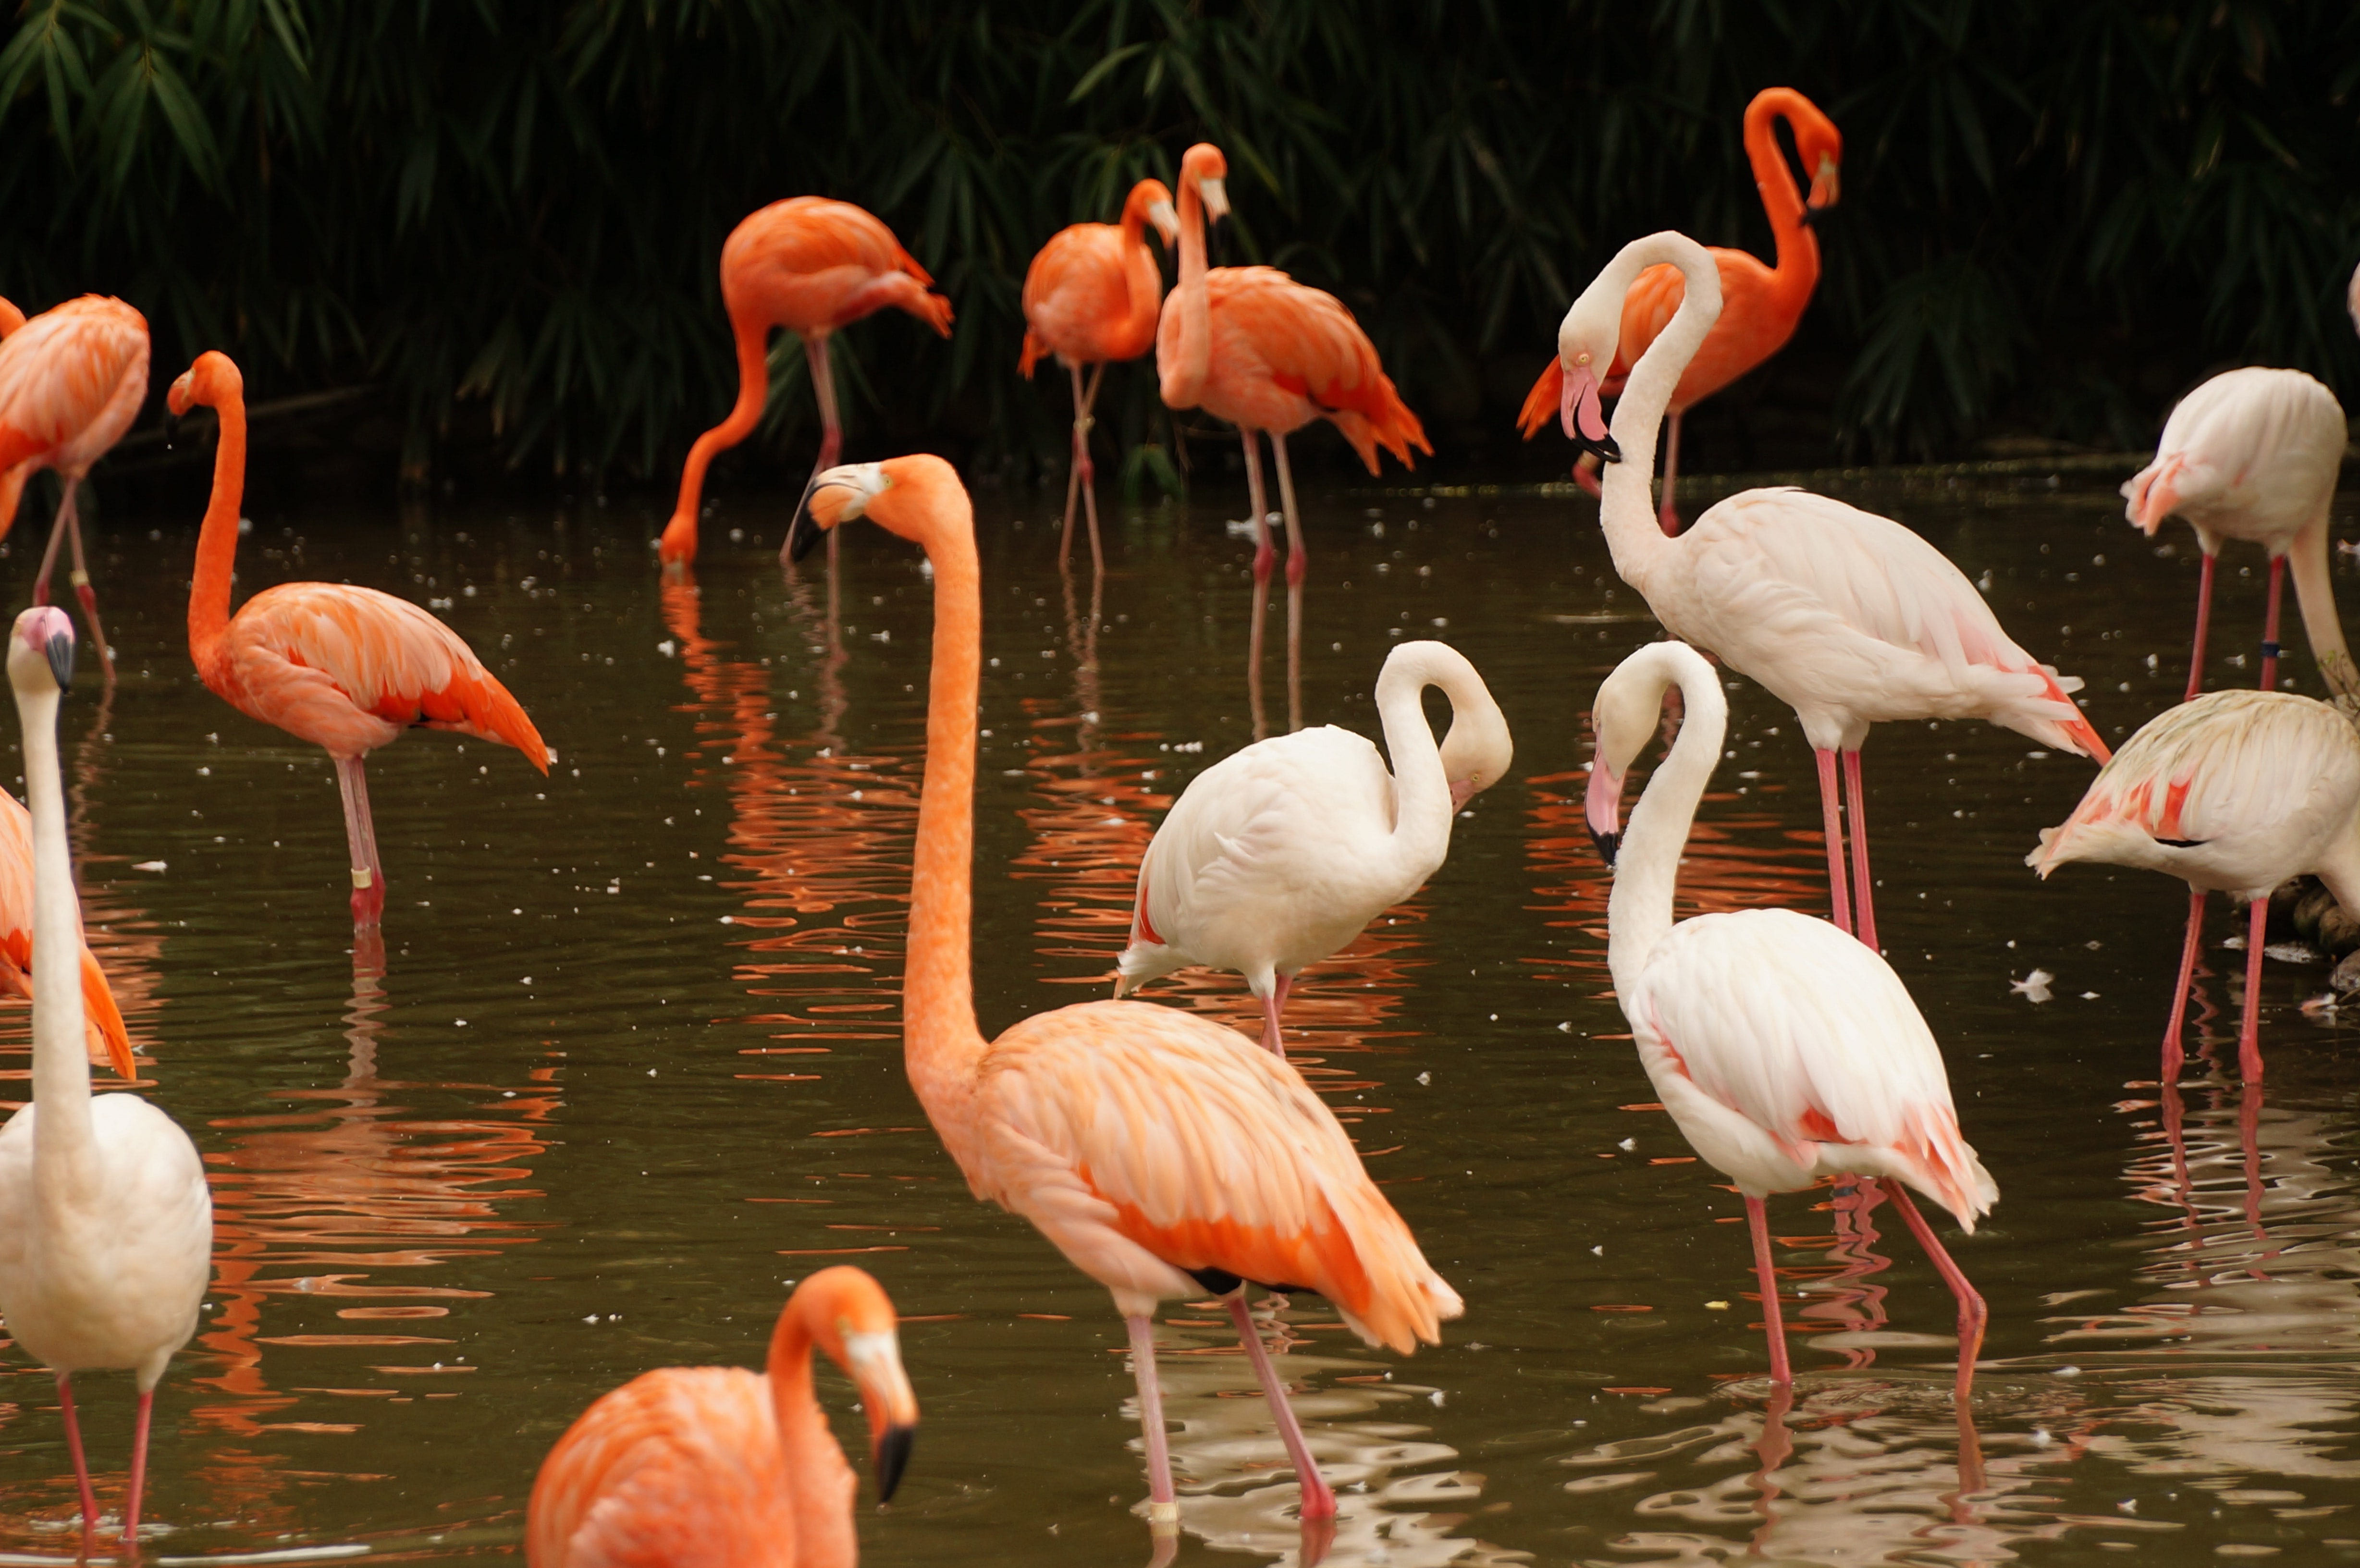 white and pink flamingos on body of water during daytime